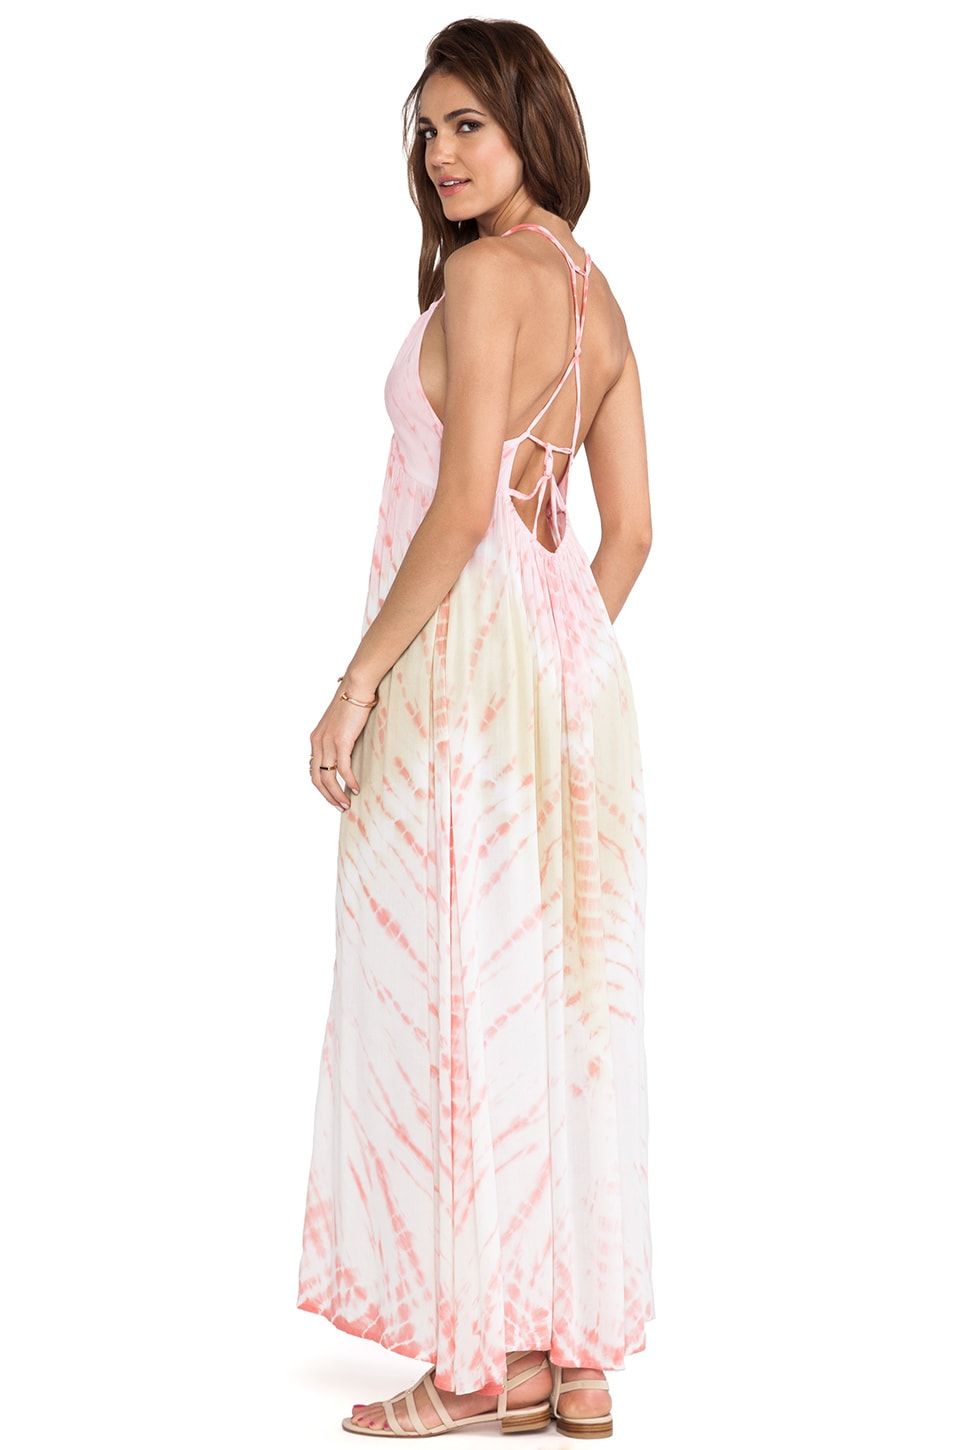 Tiare Hawaii Adair Vibe Maxi Dress in Orange & Dark Skin